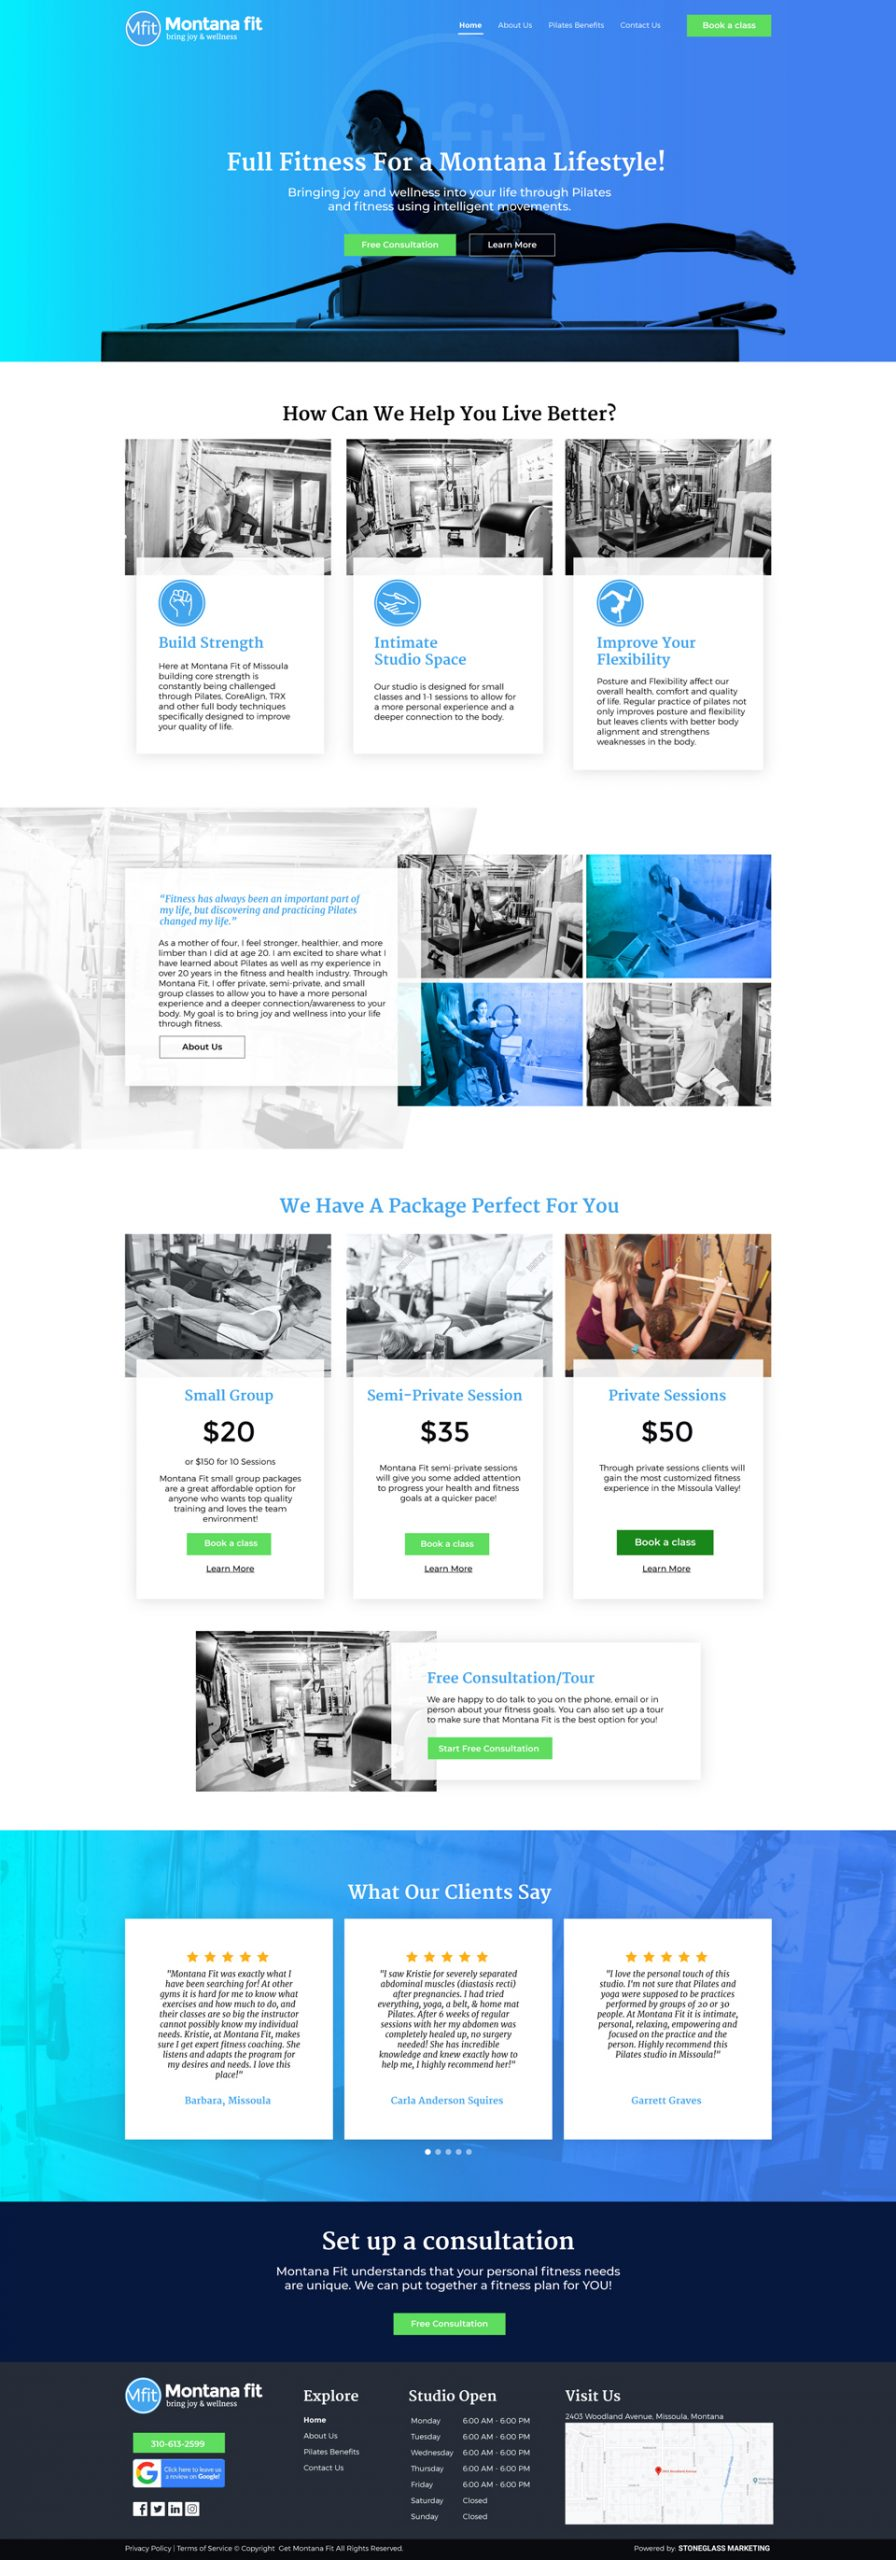 Website design for Fitness business